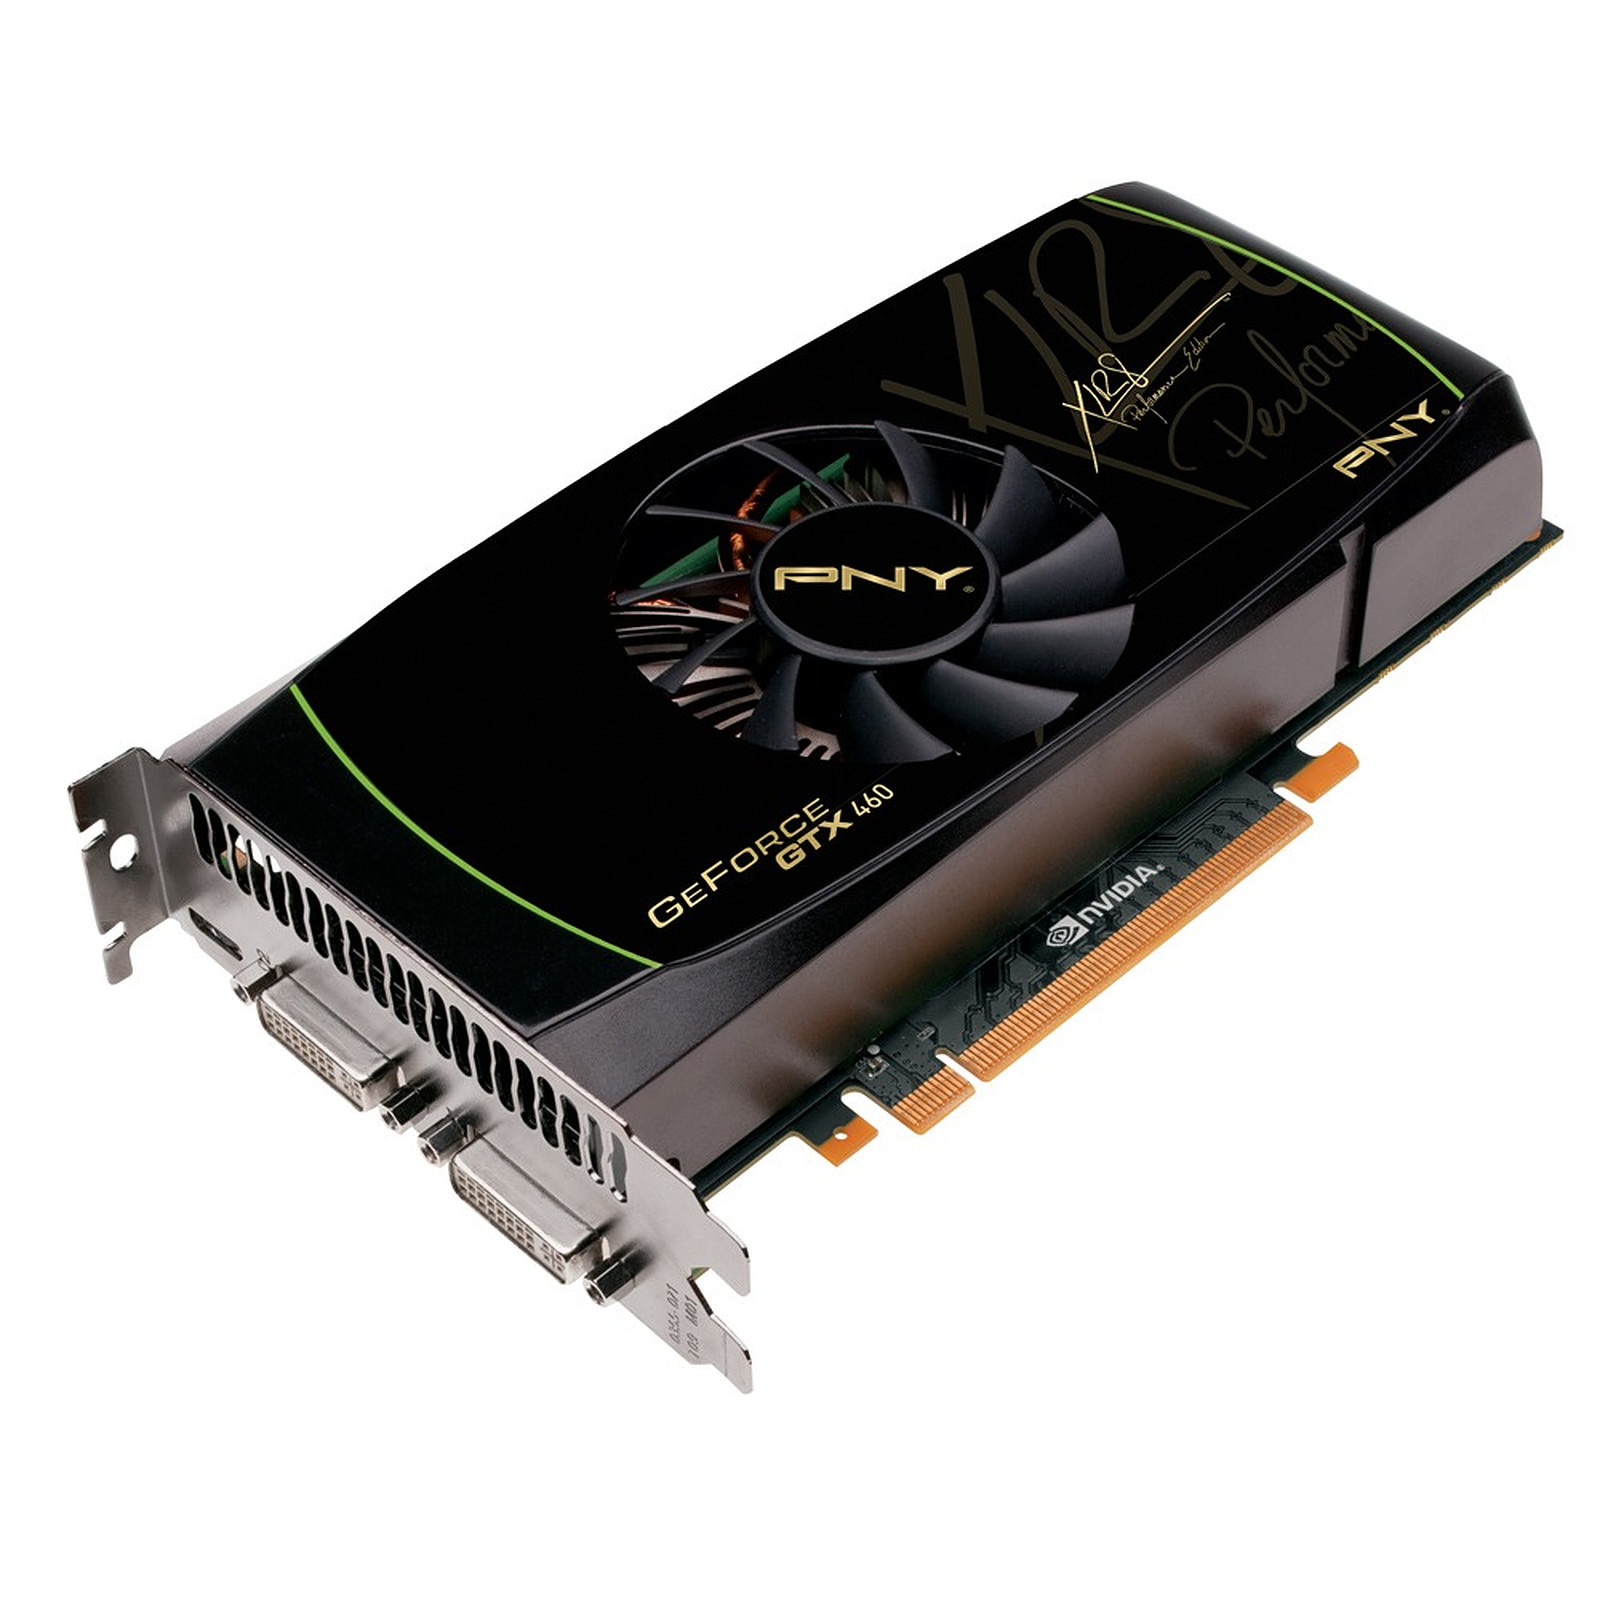 PNY GeForce GTX460 1024 Mo